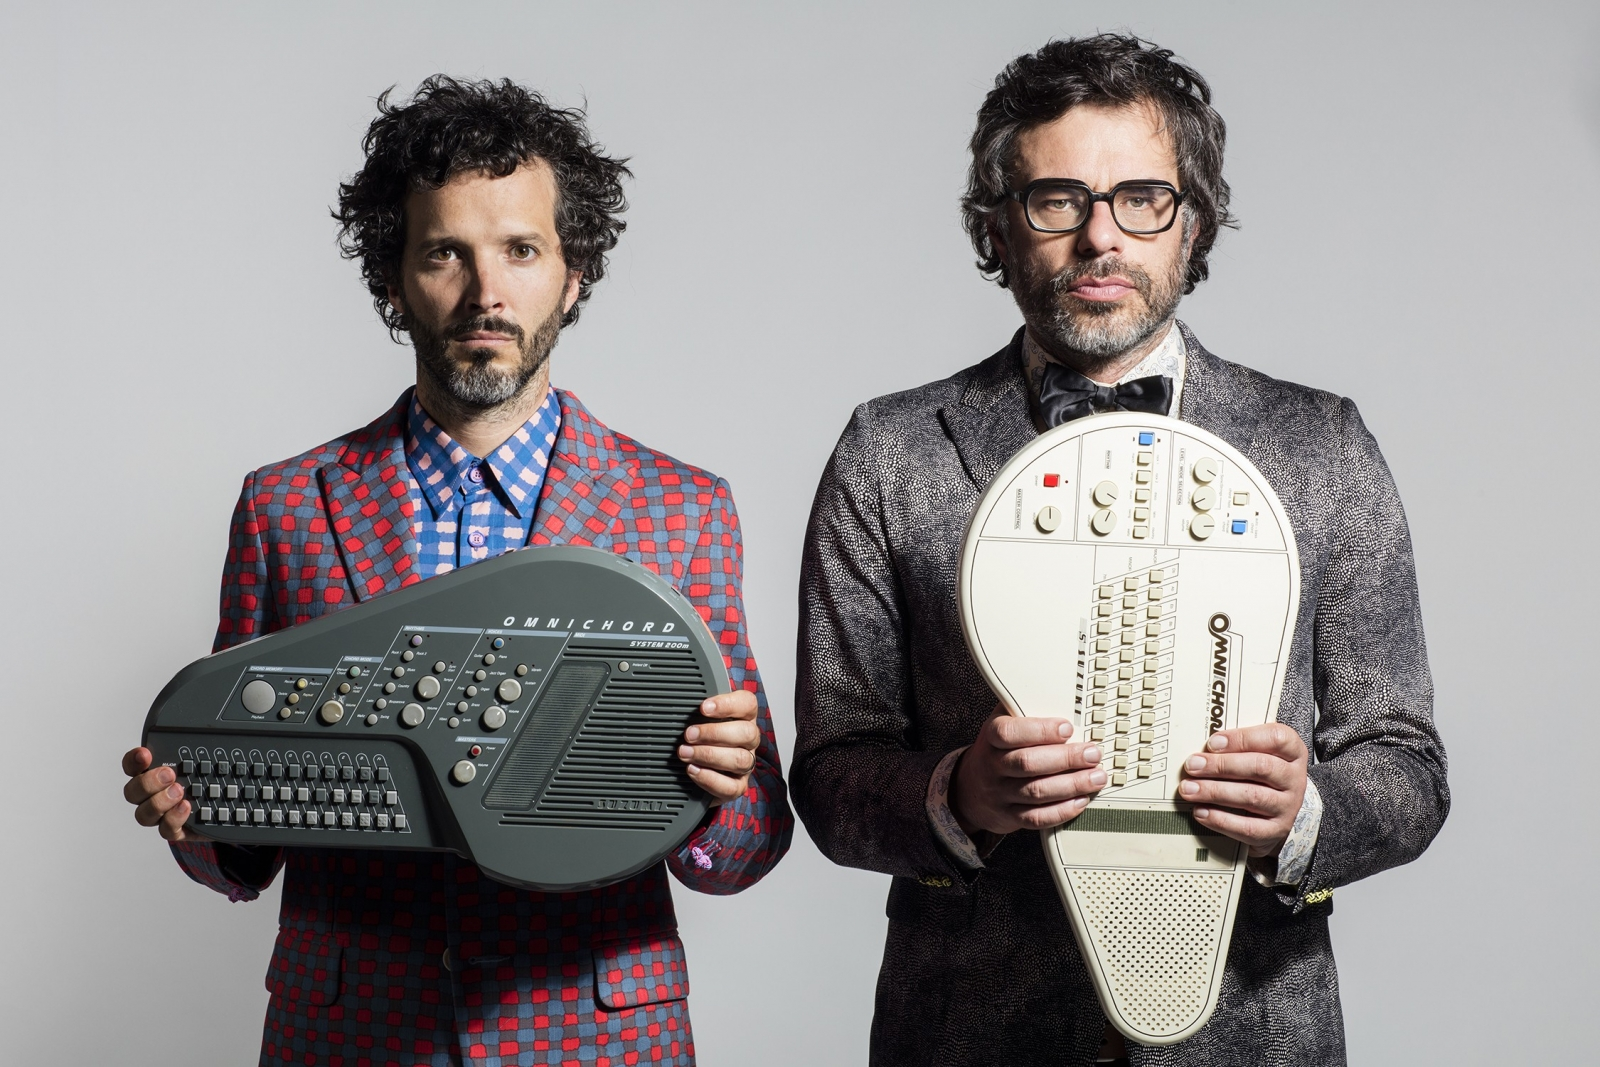 Flight of the Conchords hint at TV special